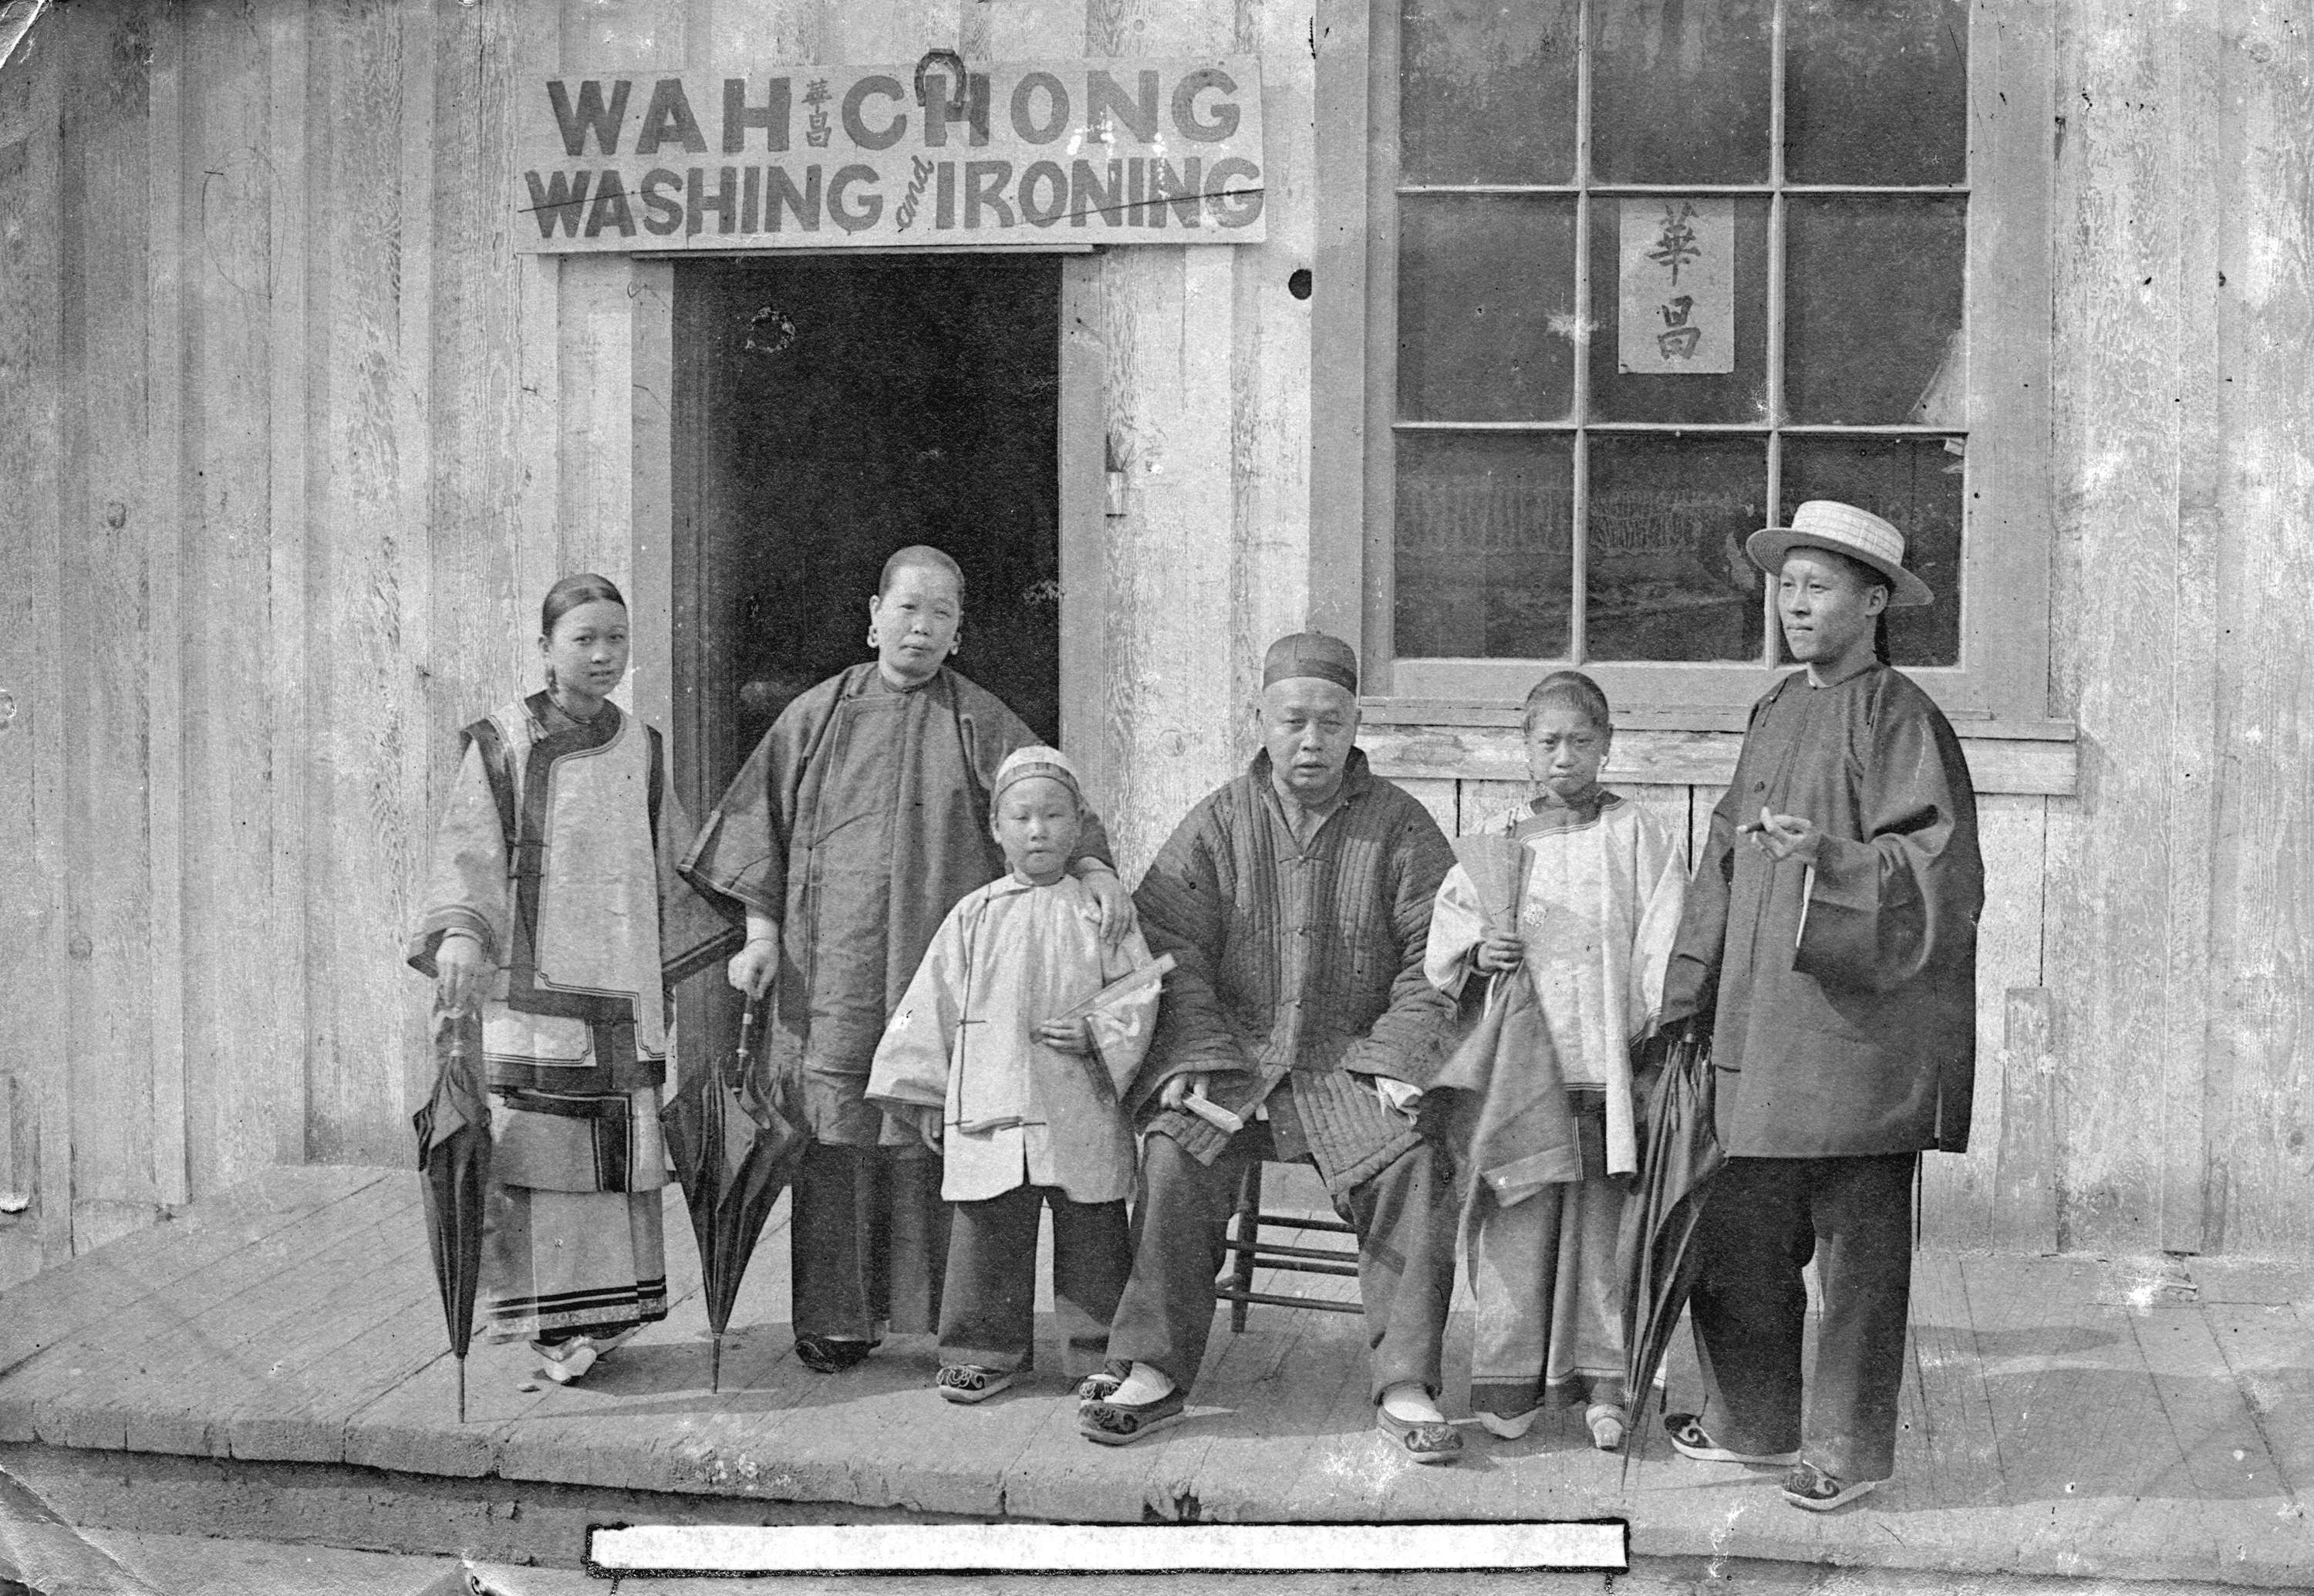 Family in front of Wah Chong Washing and Ironing, 1895.